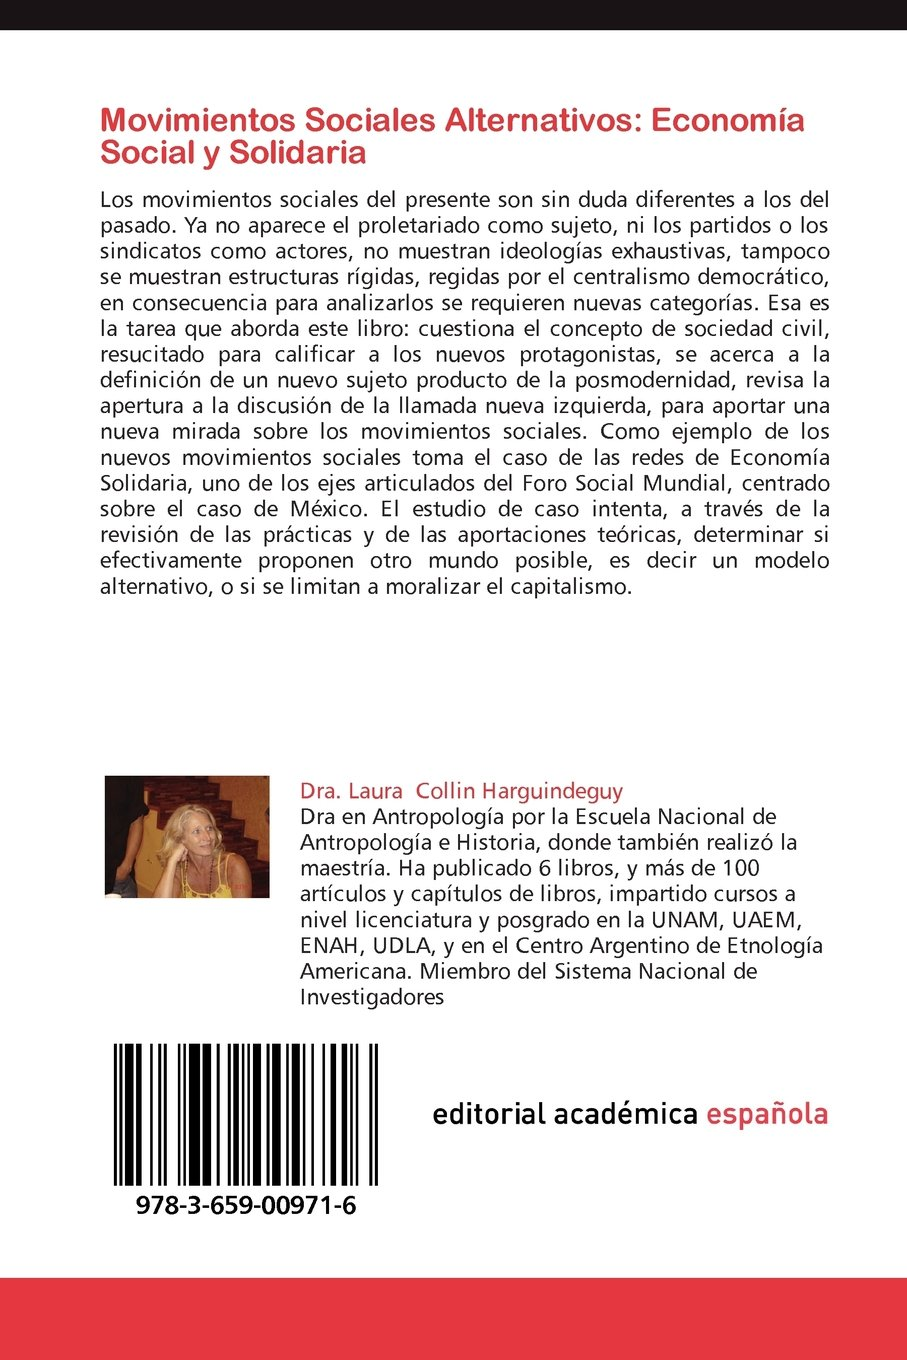 Movimientos Sociales Alternativos: Economia Social y Solidaria: Amazon.es: Laura Collin Harguindeguy: Libros